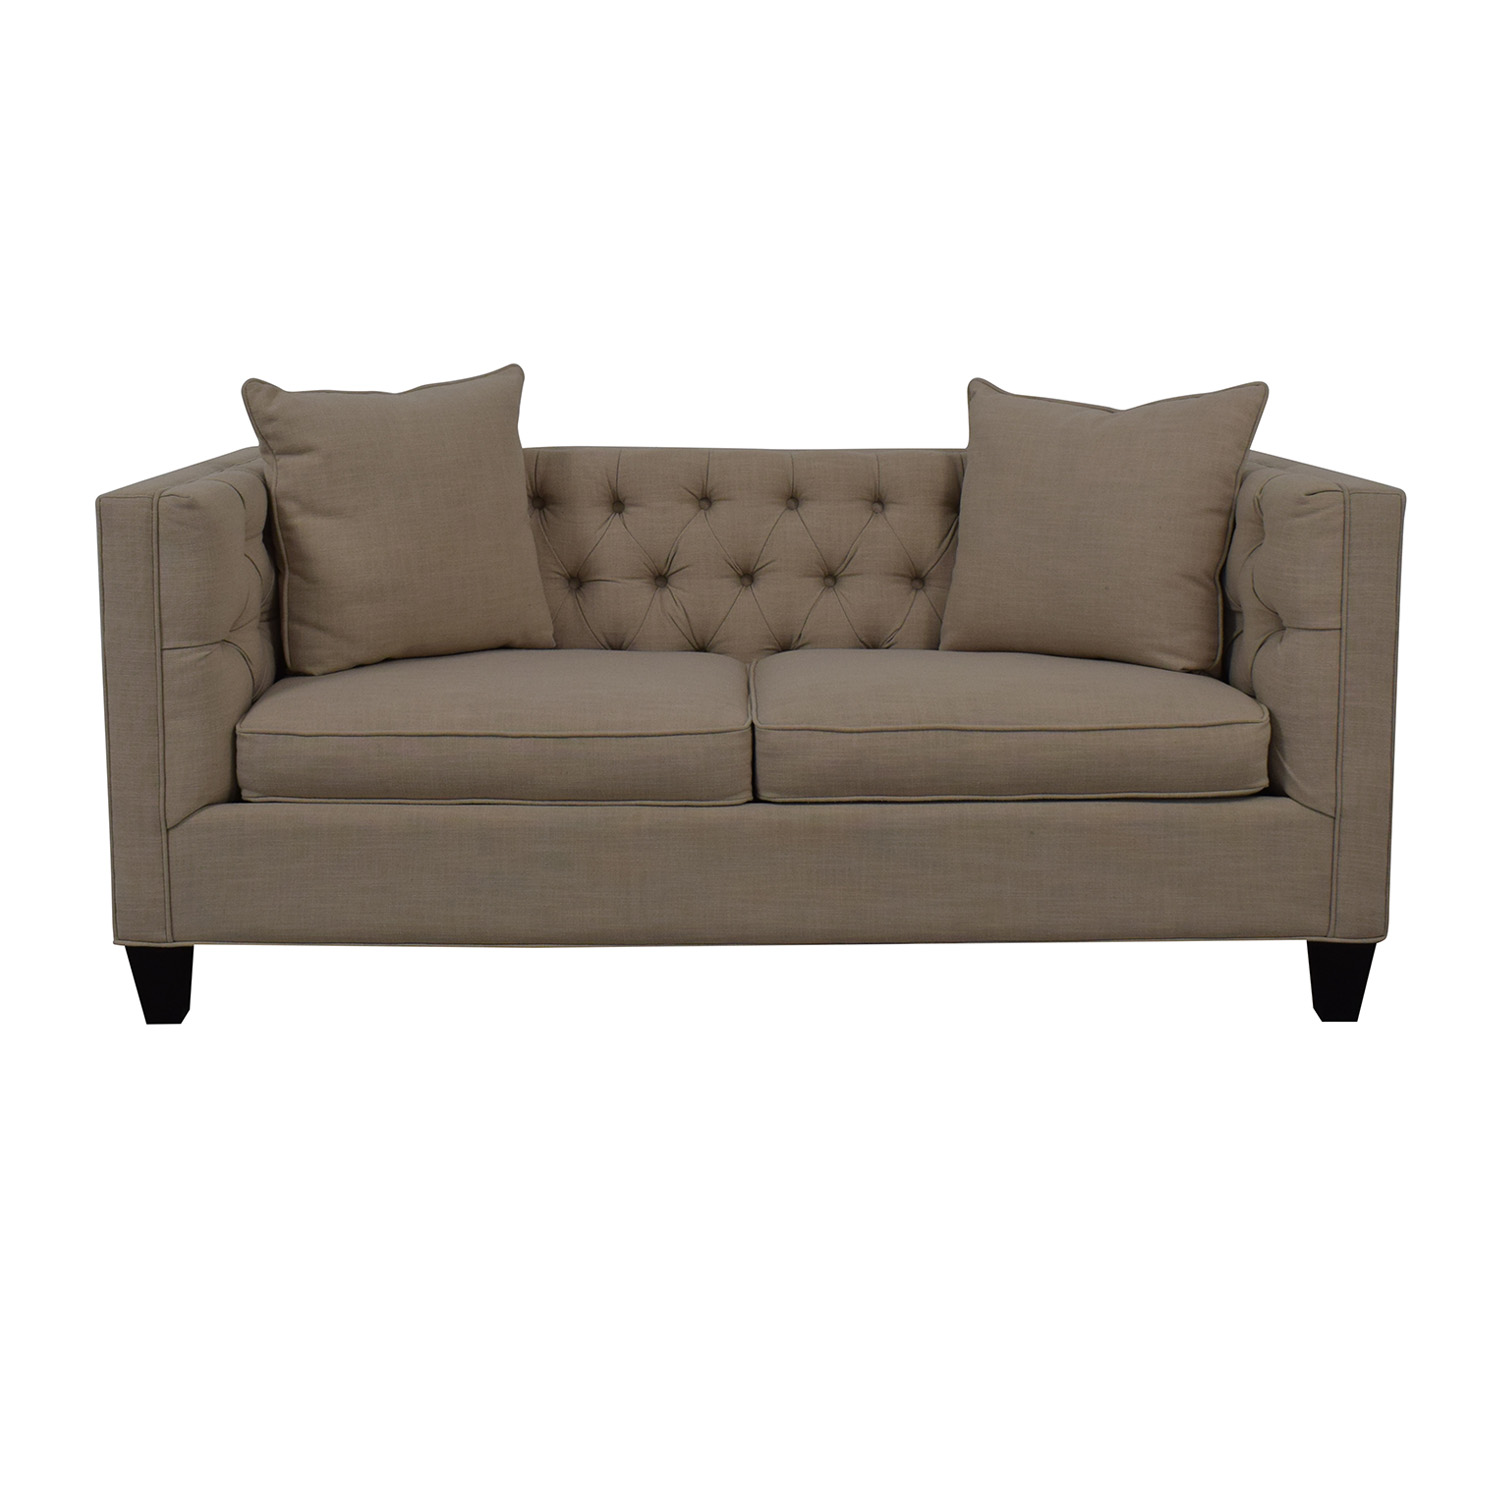 shop Home Decorators Collection Home Decorators Collection Lakewood Beige Linen Sofa online